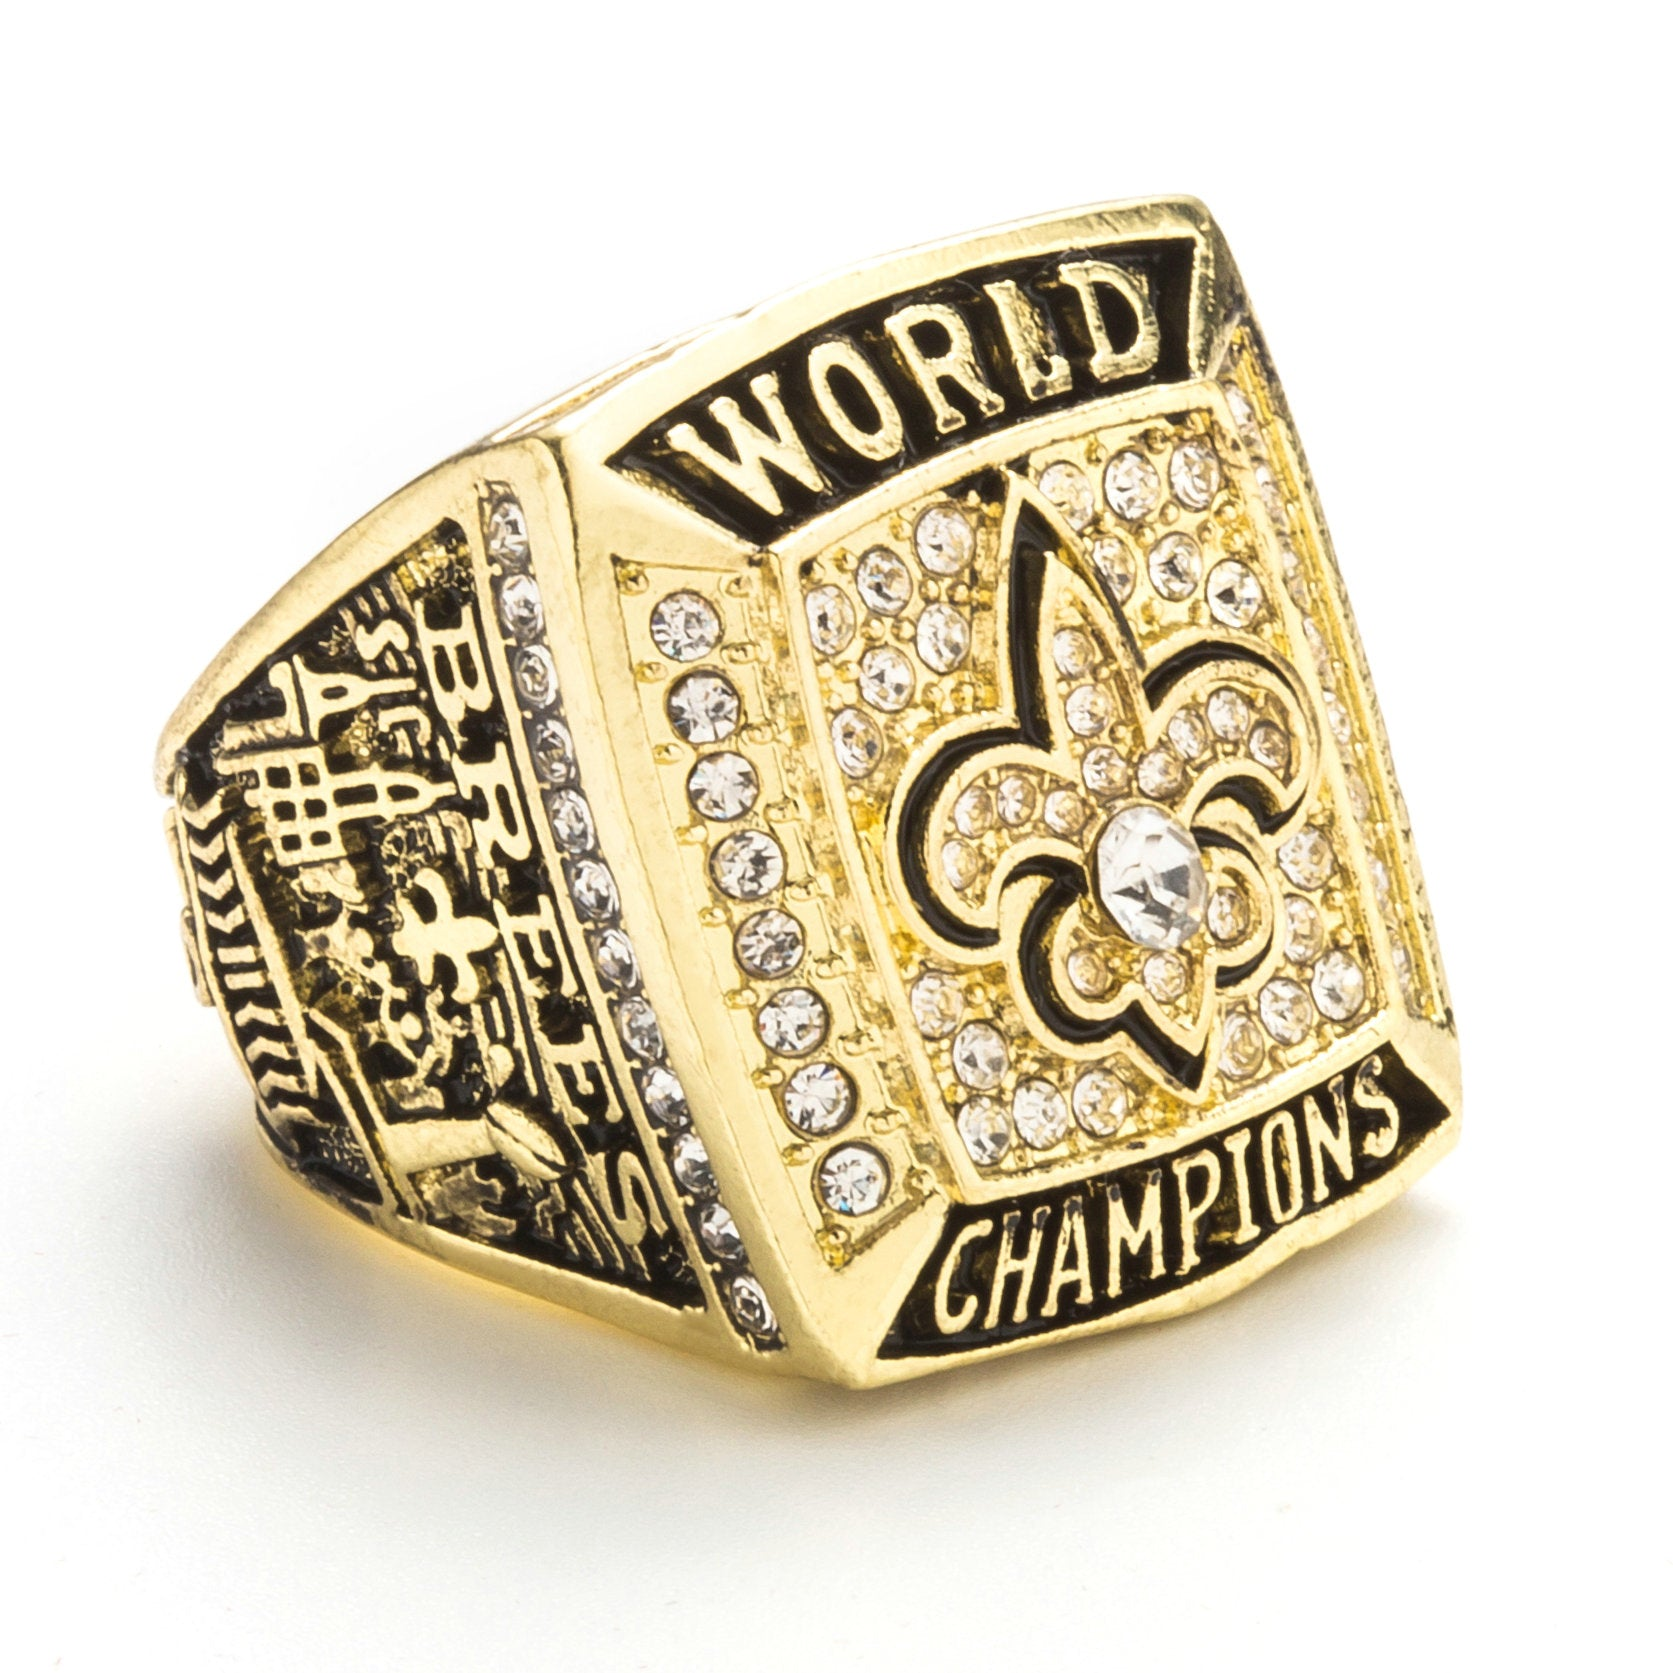 xli with nfc presentation ring lot saints champions bears chicago player box super bowl darrell detail mcclover rings lg